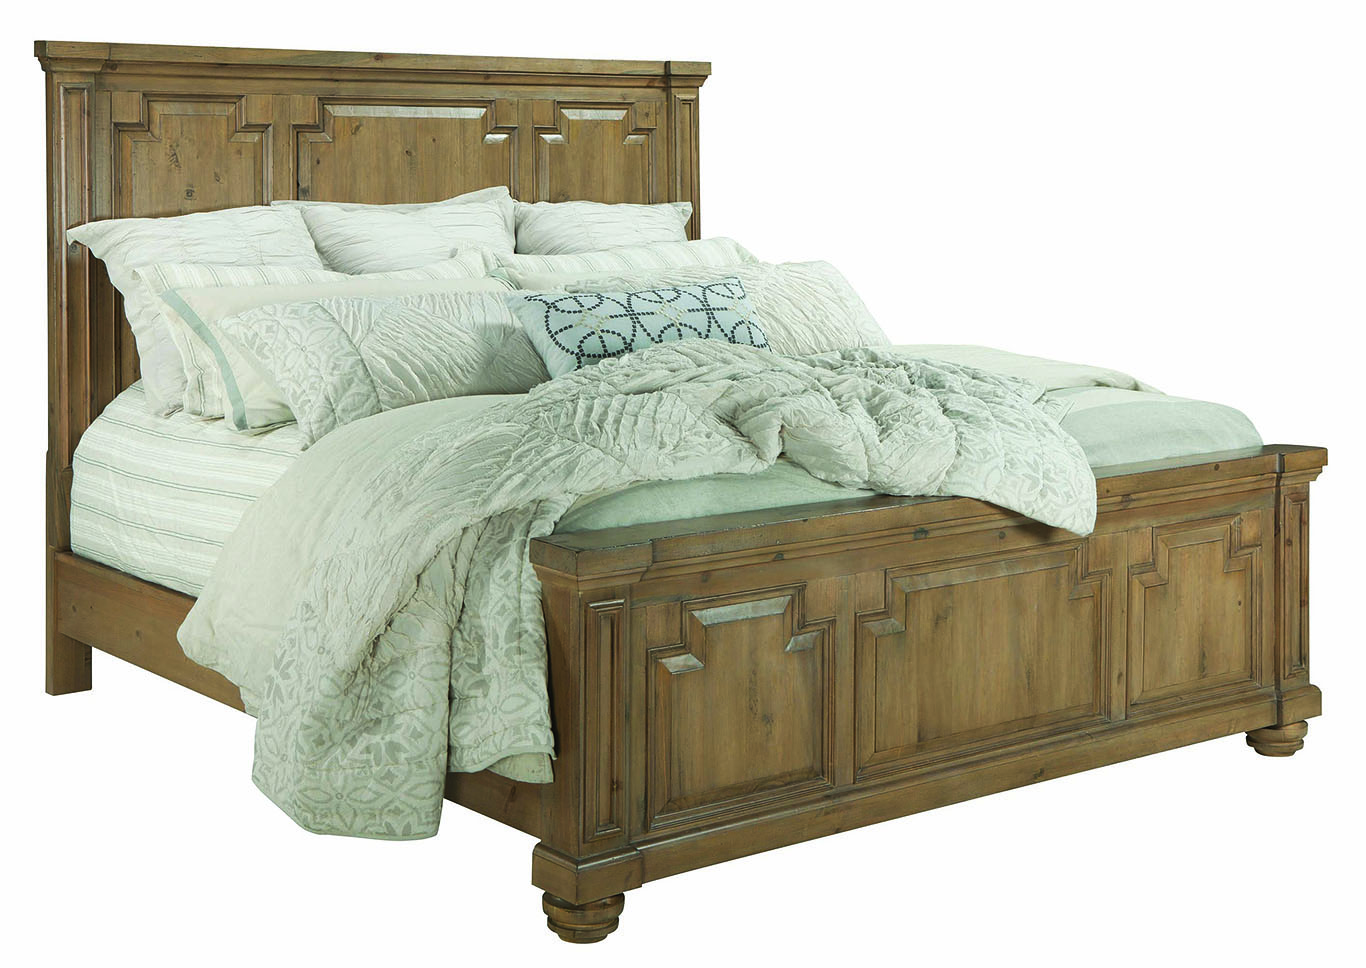 Florence Rustic Smoke Queen 4 Piece Bedroom Set,Coaster Furniture